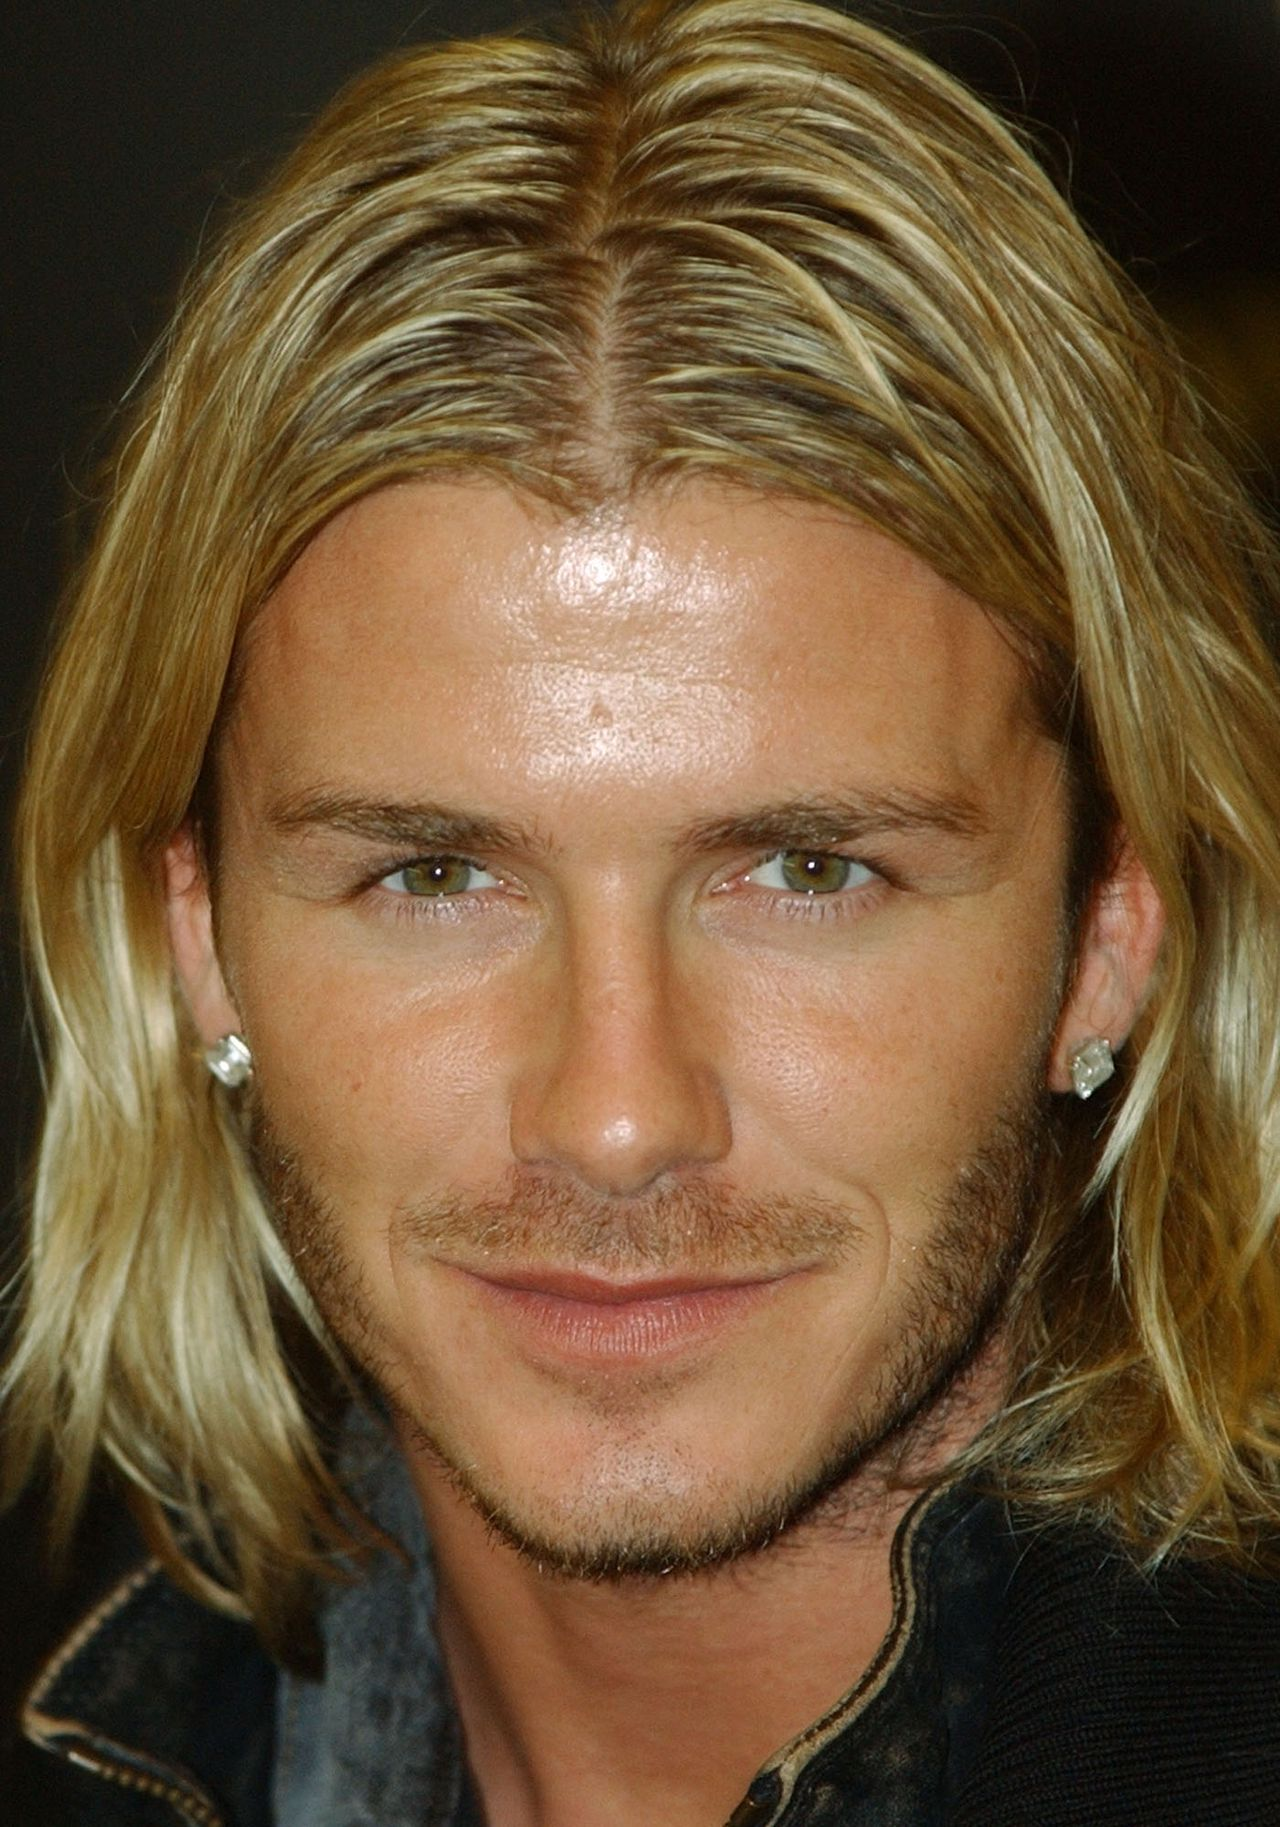 """FILE - In this Nov. 17, 2003 file photo, soccer player David Beckham pauses during a signing session for his autobiography """"My Side"""" held at a London bookstore. Beckham says he is retiring from soccer at the end of the season. The 38-year-old Beckham recently won a league title in a fourth country with Paris Saint-Germain. He has become a global superstar since starting his career at Manchester United. (AP Photo/Richard Lewis, FIle)"""